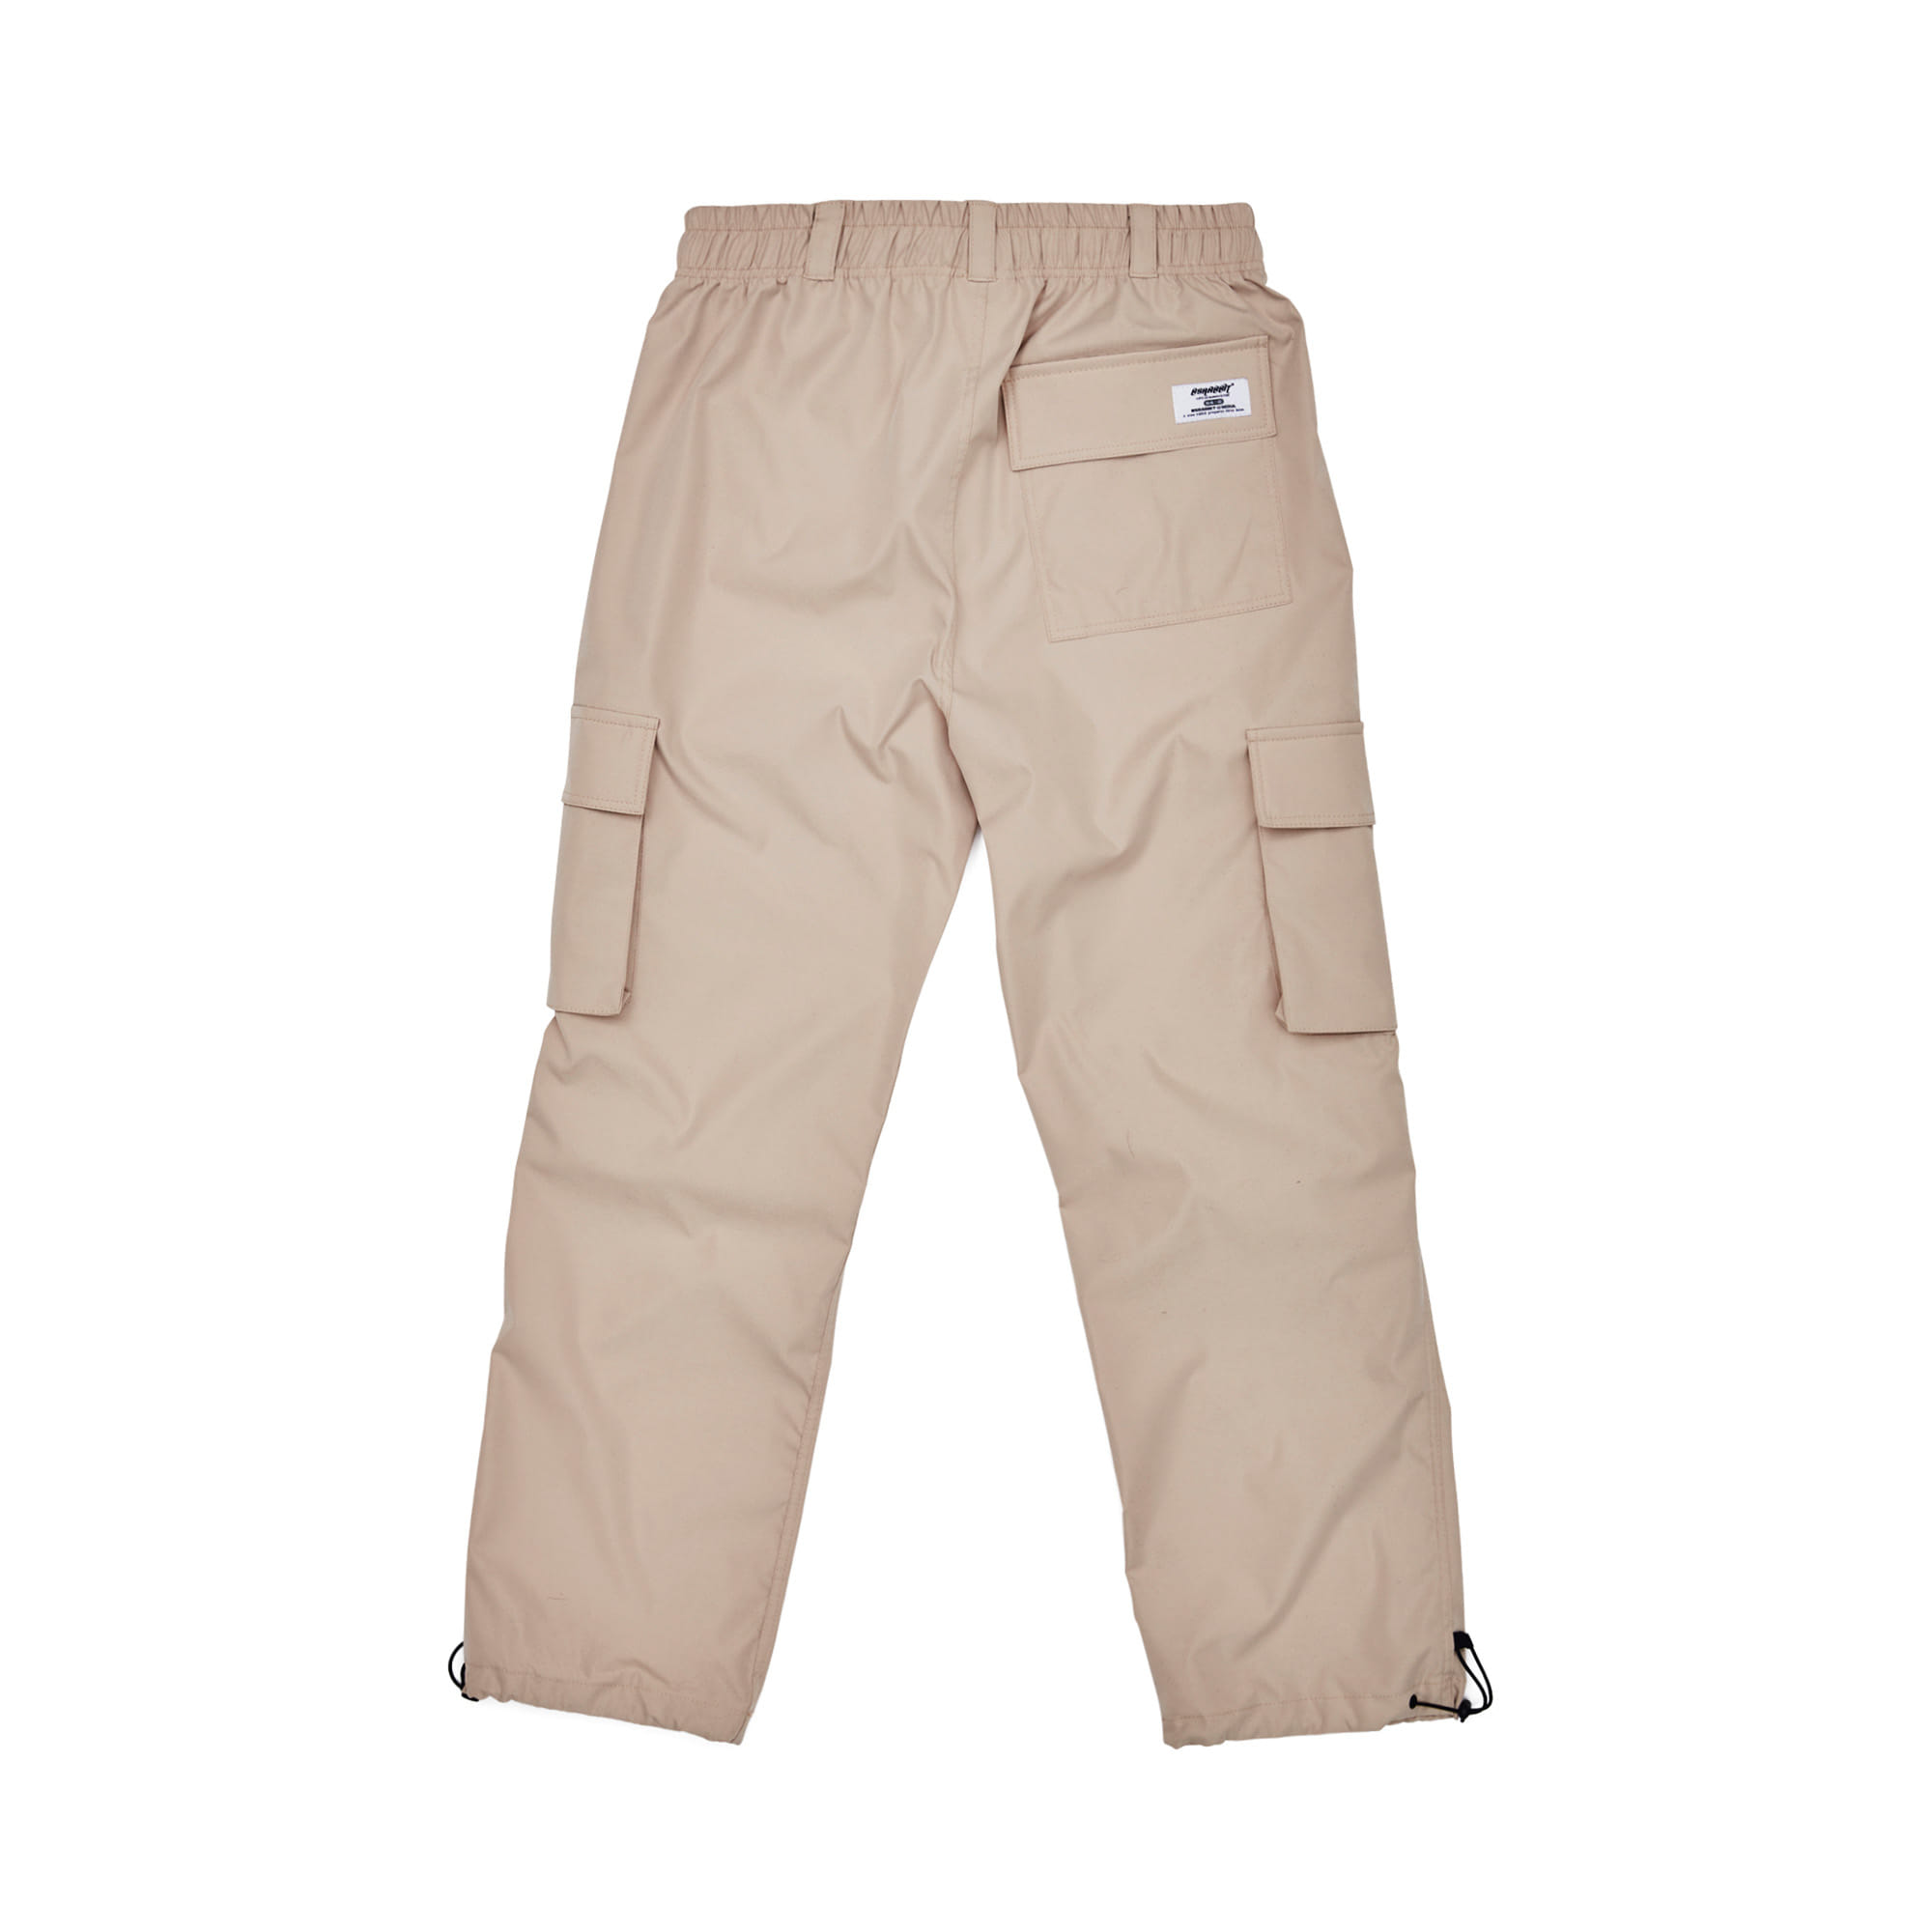 BSRABBIT BSRBT STRETCH TWILL CARGO TRACK PANTS BEIGE